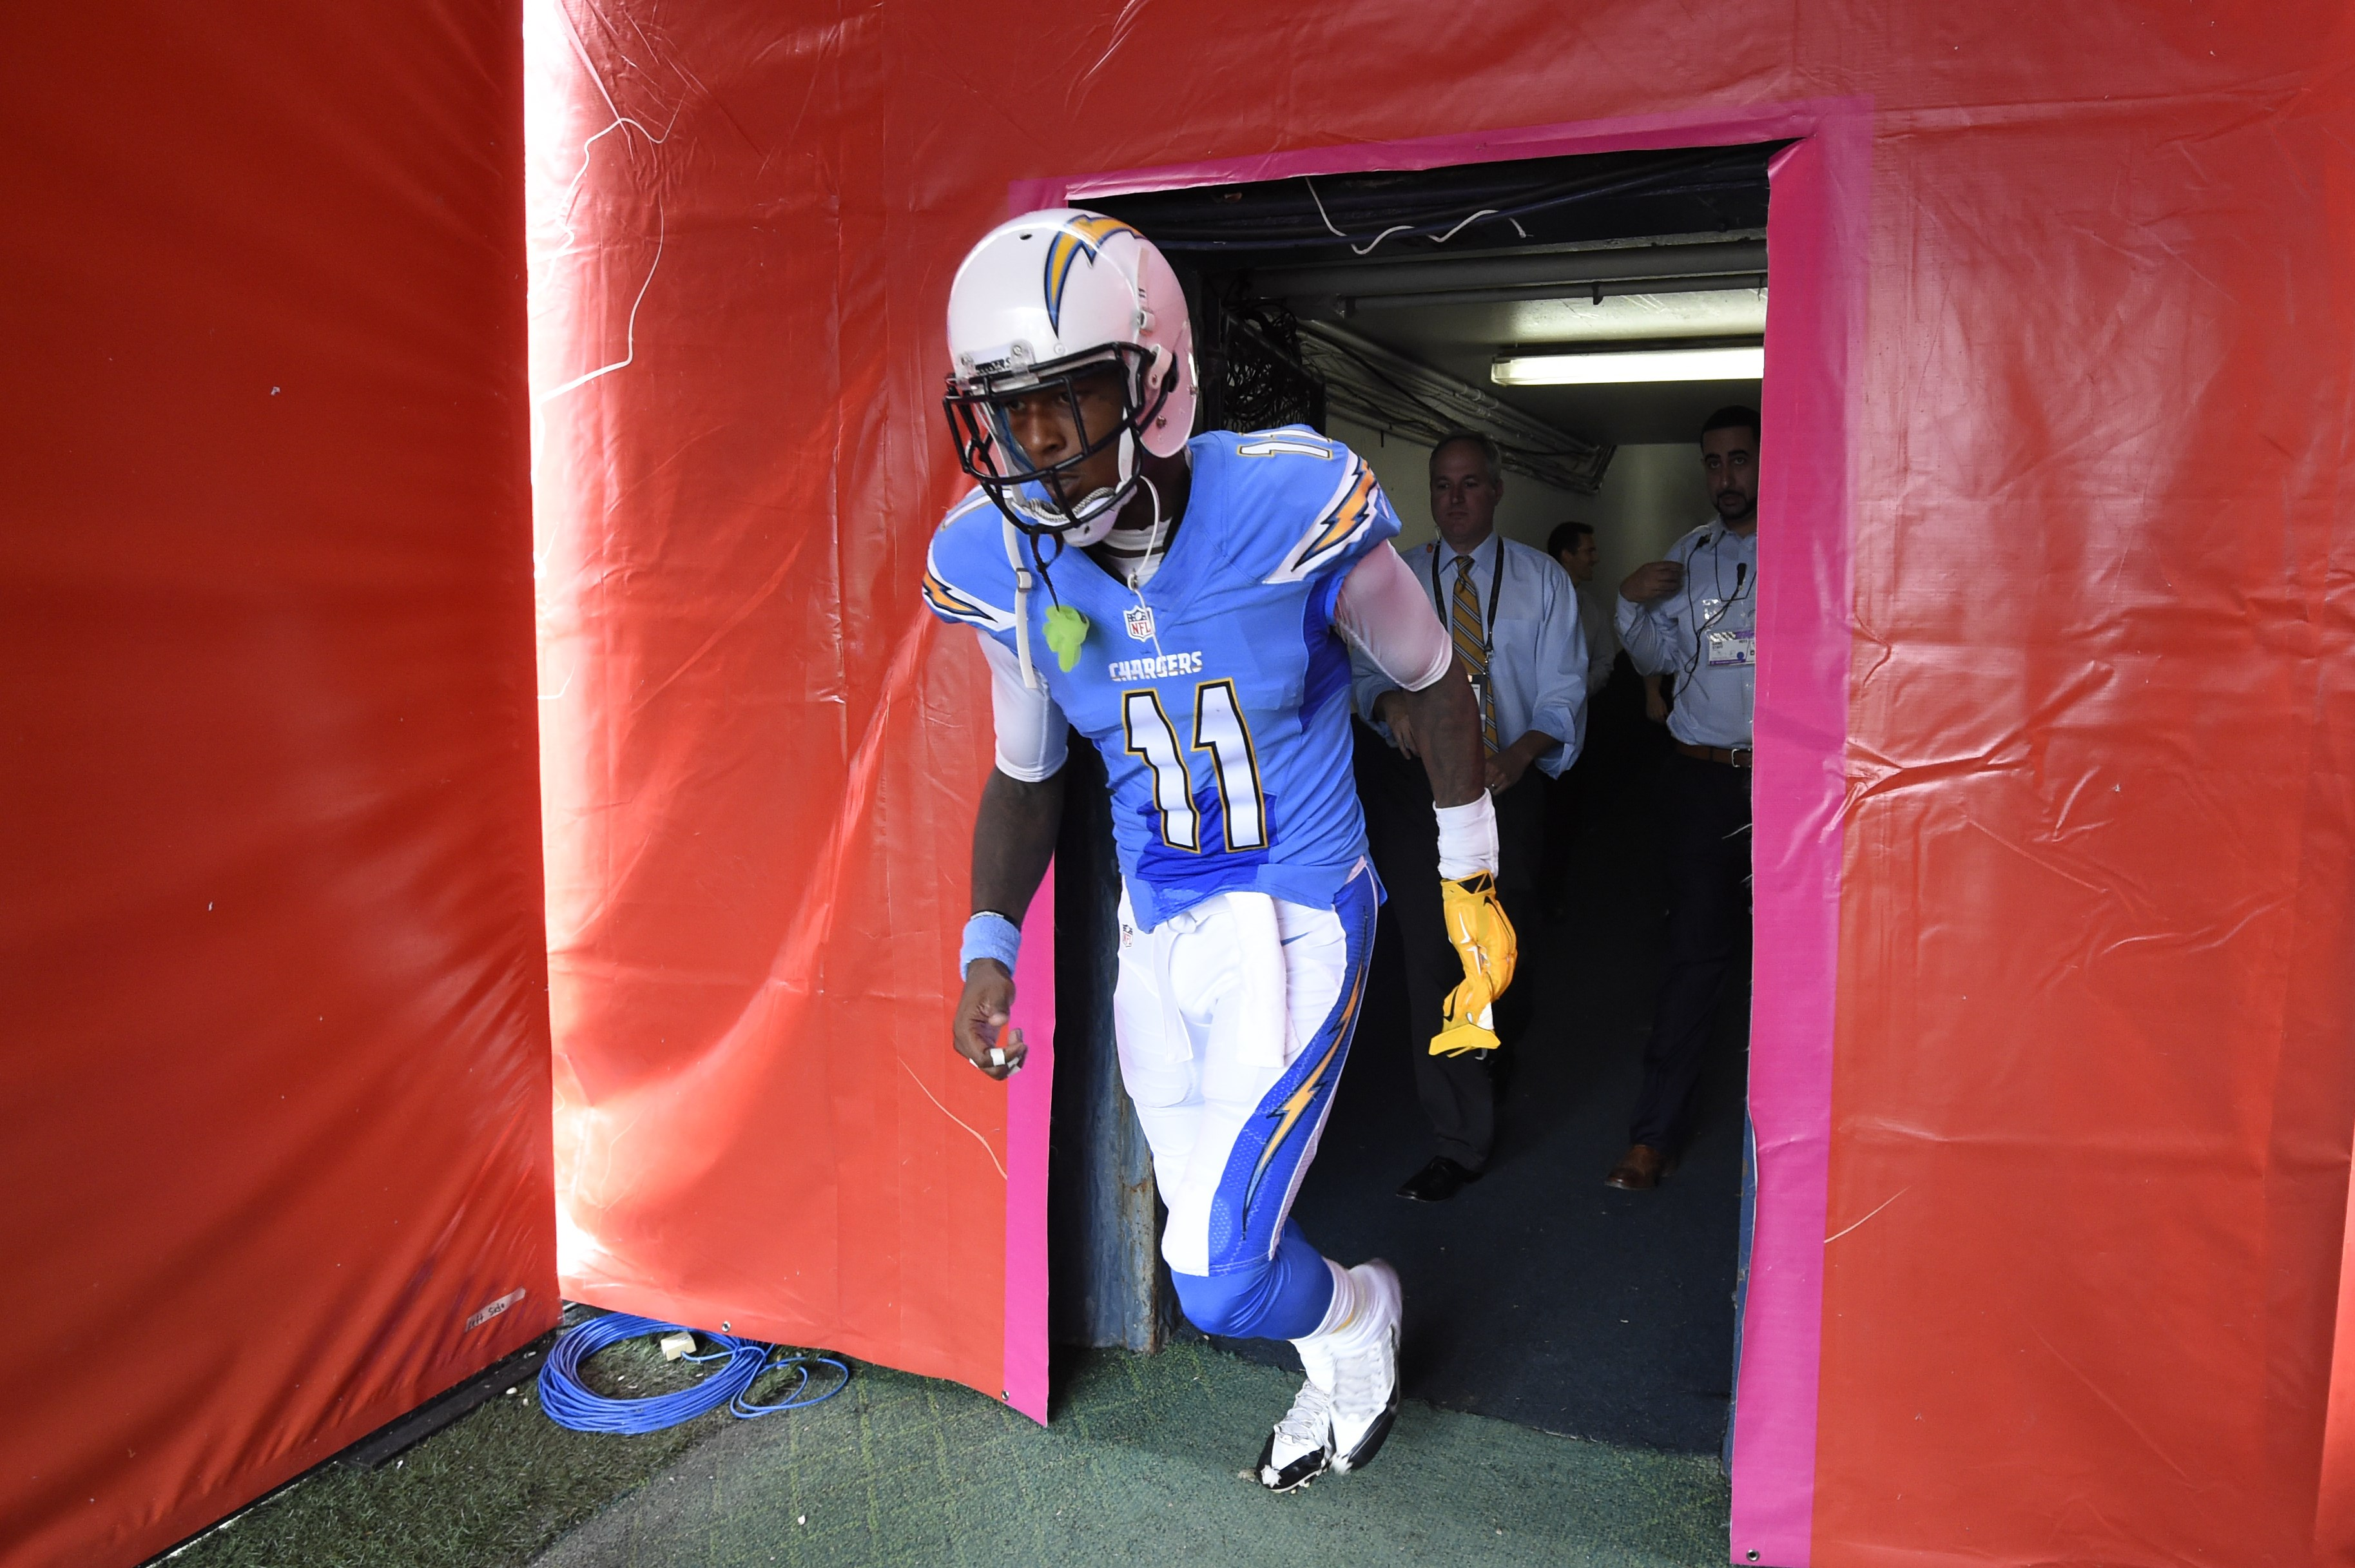 San Diego Chargers wide receiver Steve Johnson walks onto the field before an NFL football game against the Oakland Raiders  Sunday, Oct. 25, 2015, in San Diego. (AP Photo/Denis Poroy)